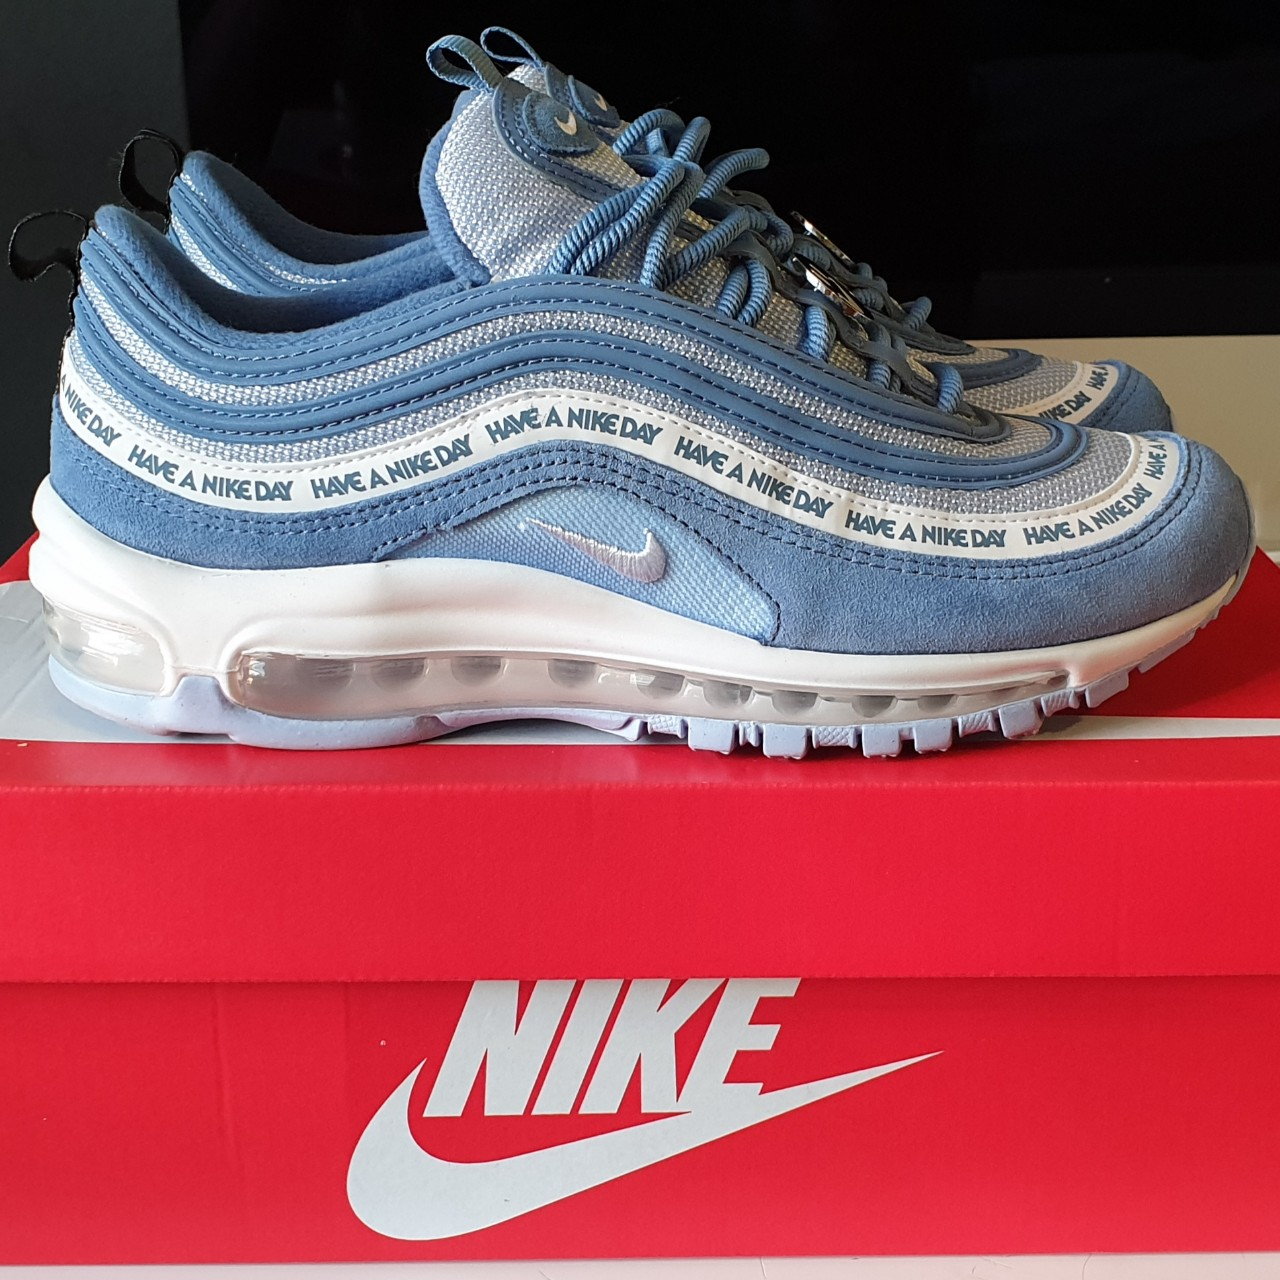 Nike Mesh Upper Nike Air Max 97 Athletic Shoes for Men eBay